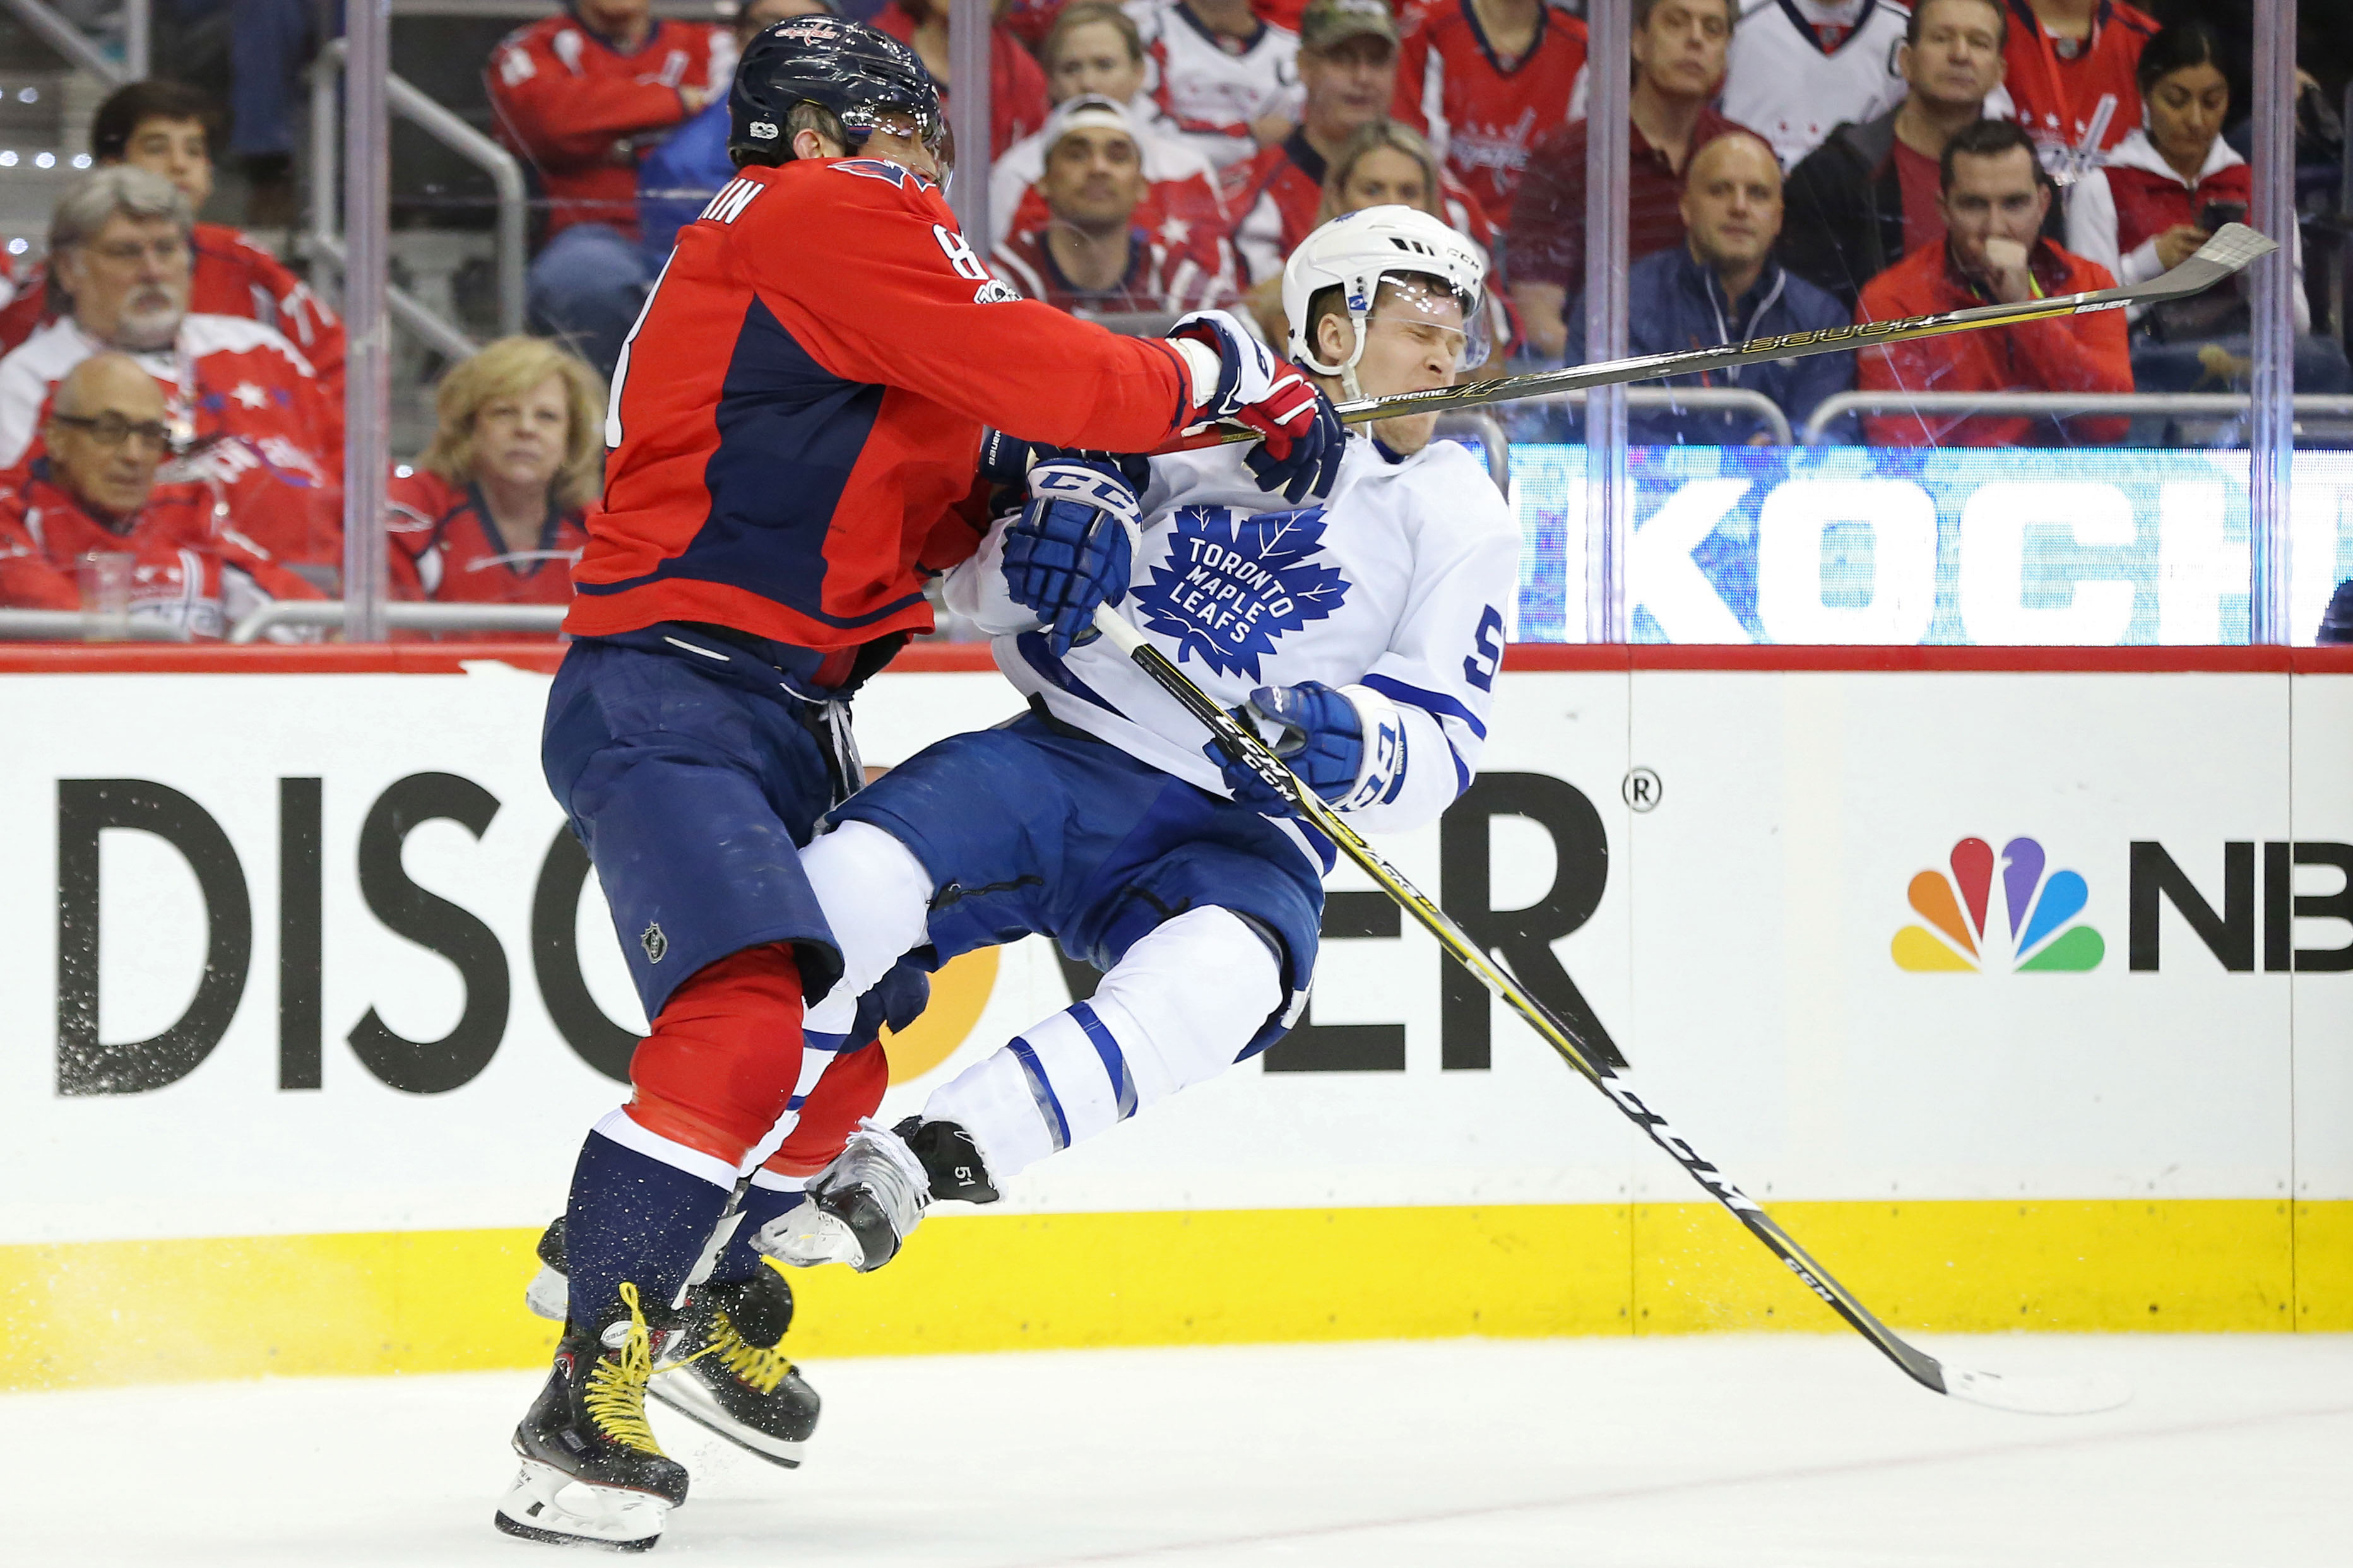 10030690-nhl-stanley-cup-playoffs-toronto-maple-leafs-at-washington-capitals